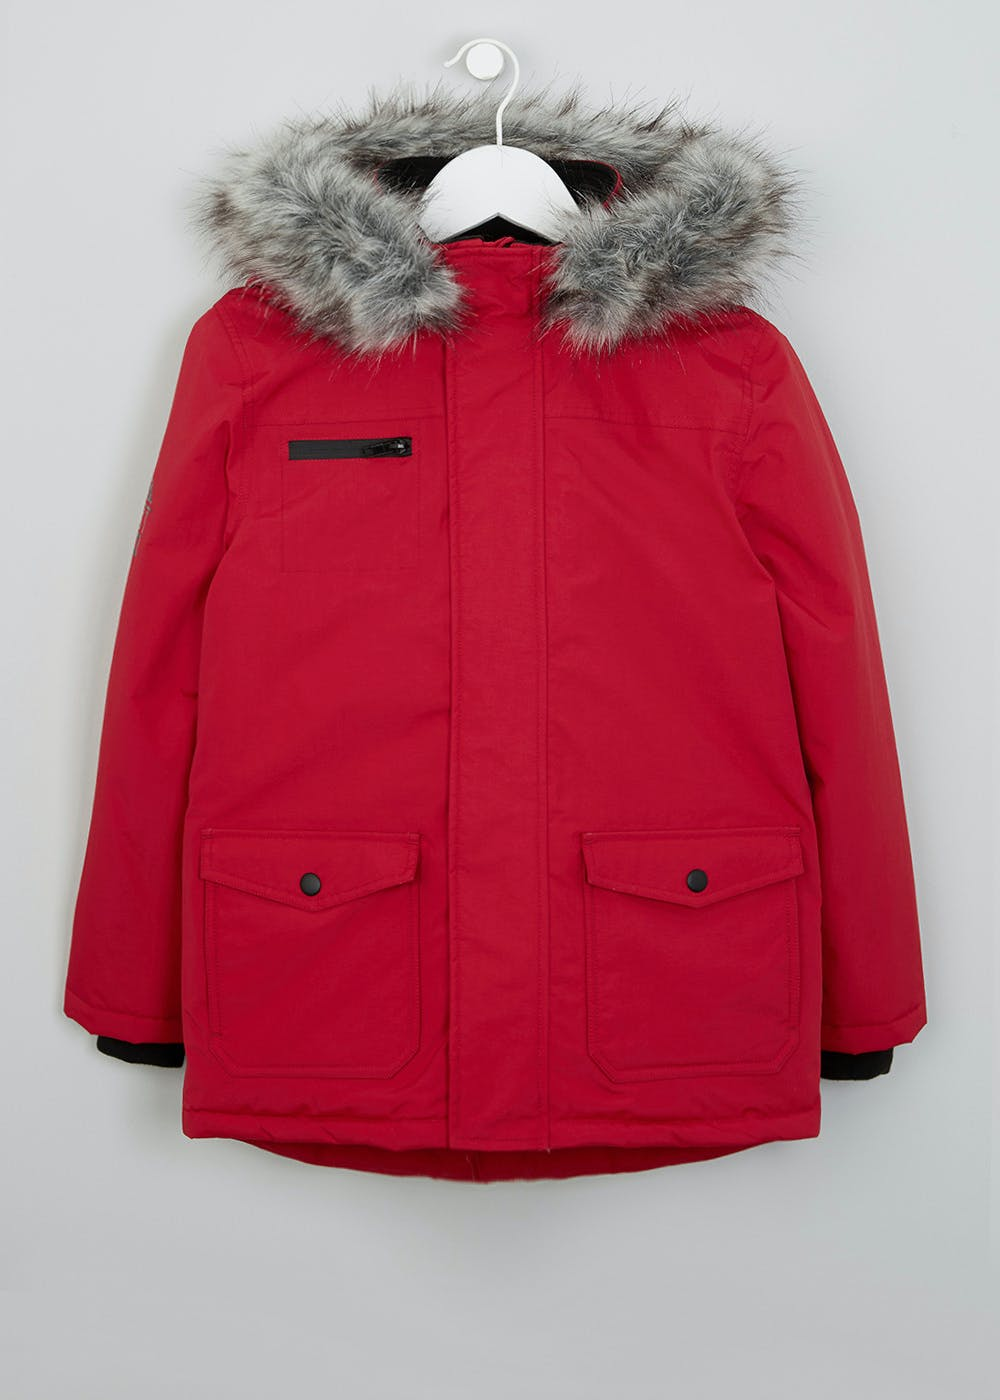 72615dfd1 Boys Hooded Parka (3-13yrs) – Red – Matalan